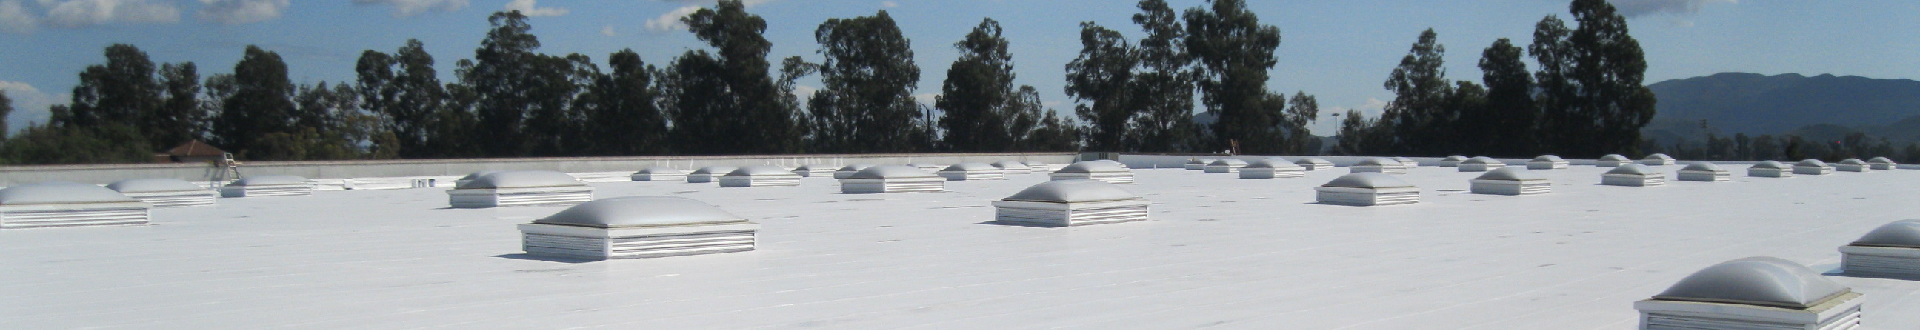 Houston Commercial Roof Repair Service Replacement - TPO Roof Replacement Houston